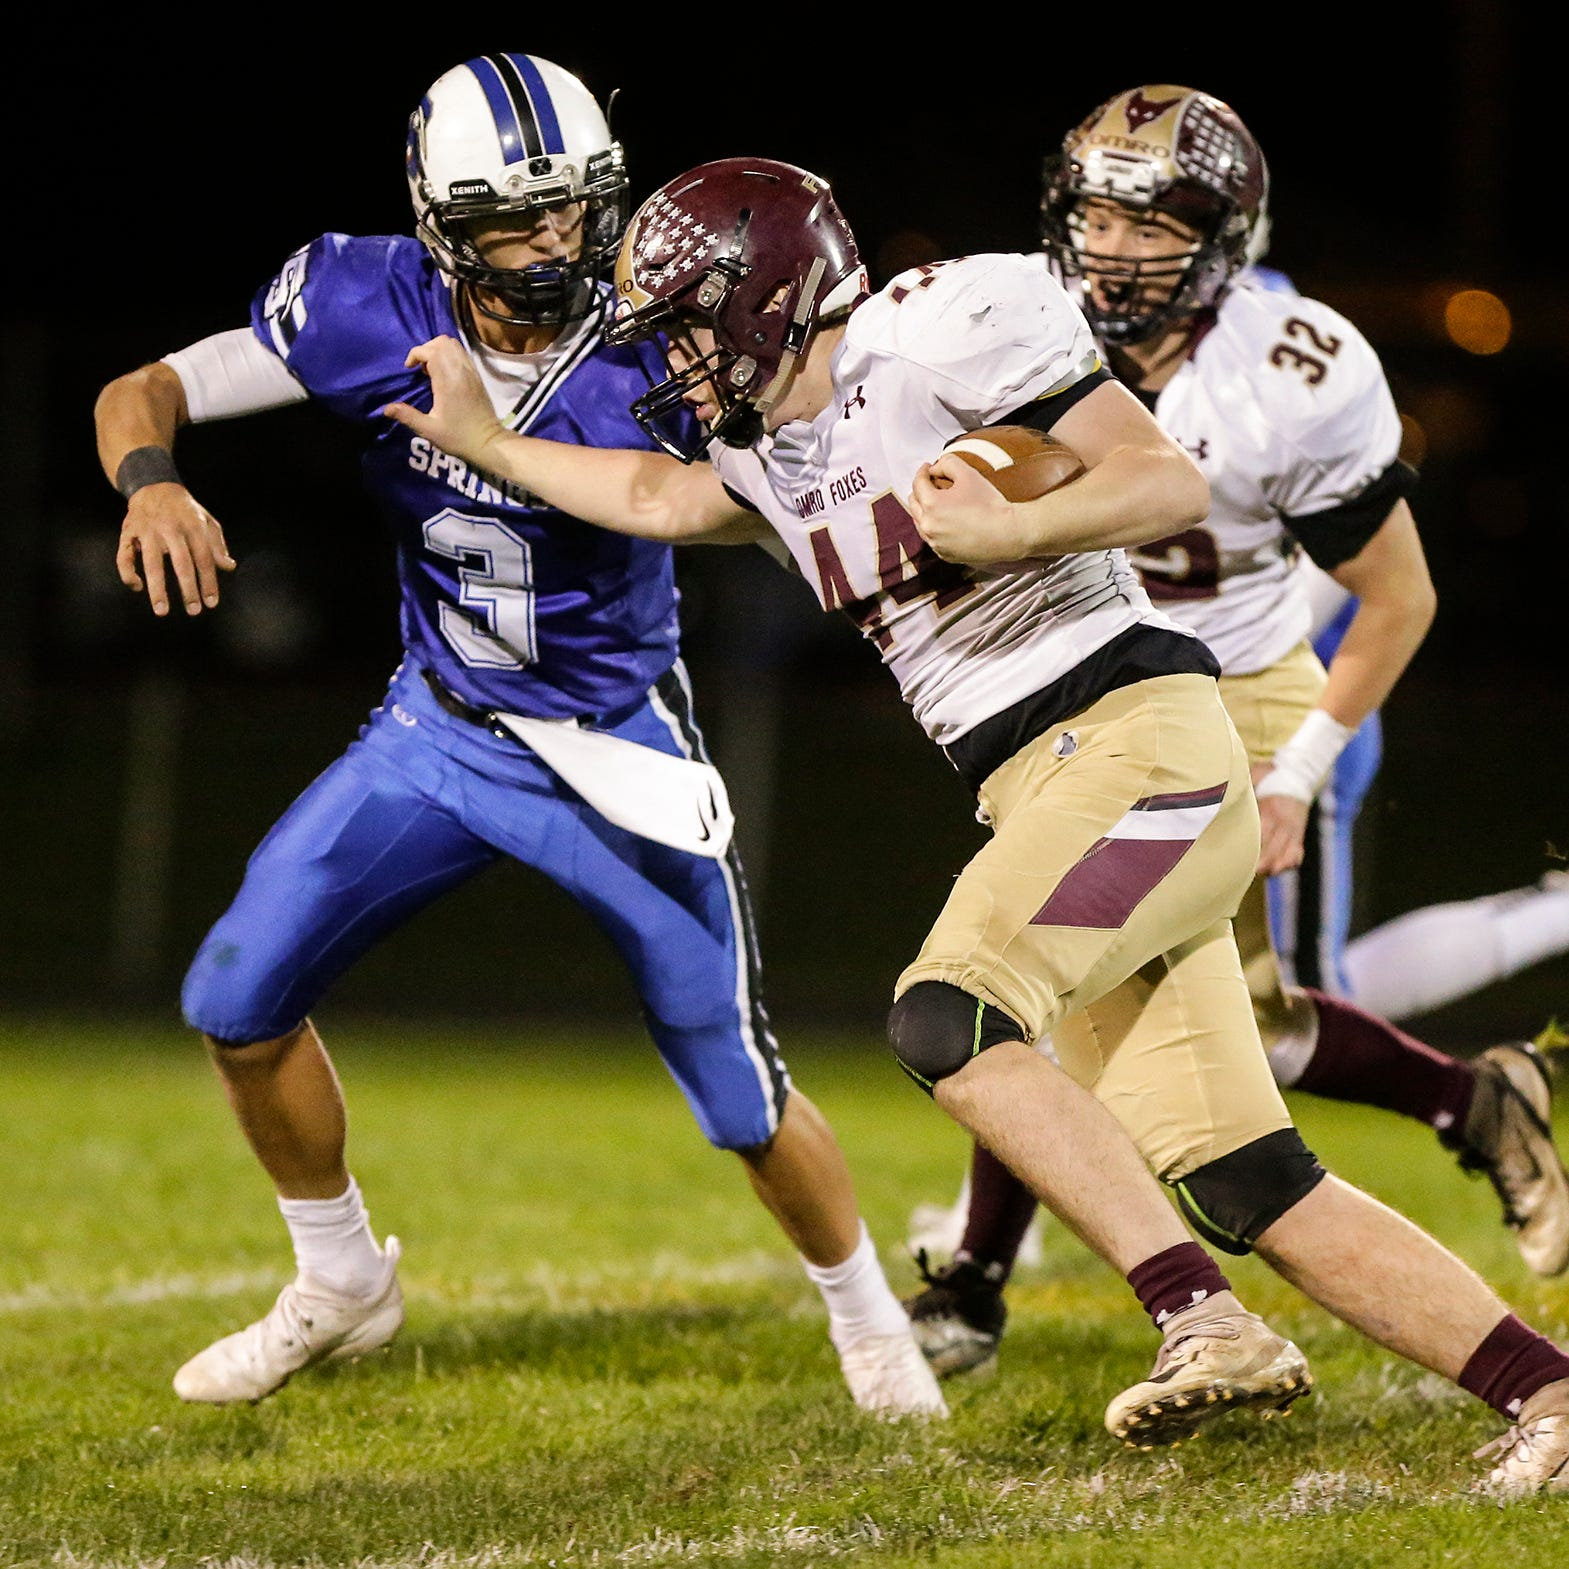 WIAA football: St. Mary's Springs, Fond du Lac enter second round of playoffs